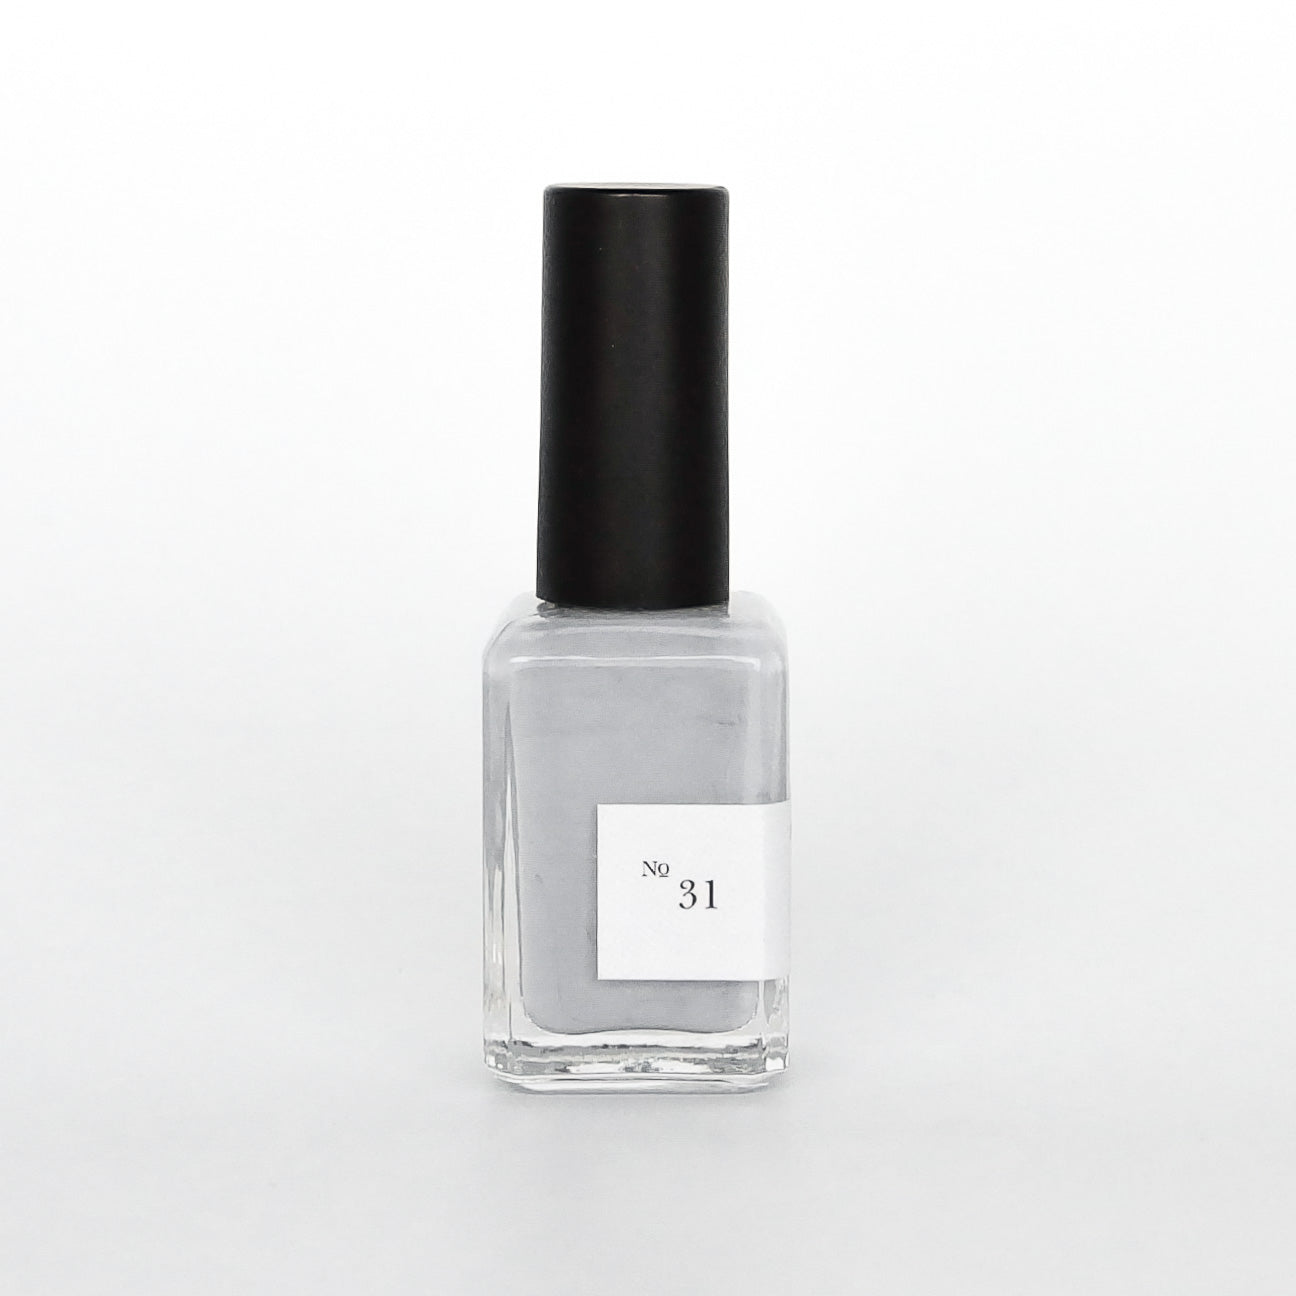 Sundays Nail Lacquer No.31, Nails, Sundays - Astrid Wylde